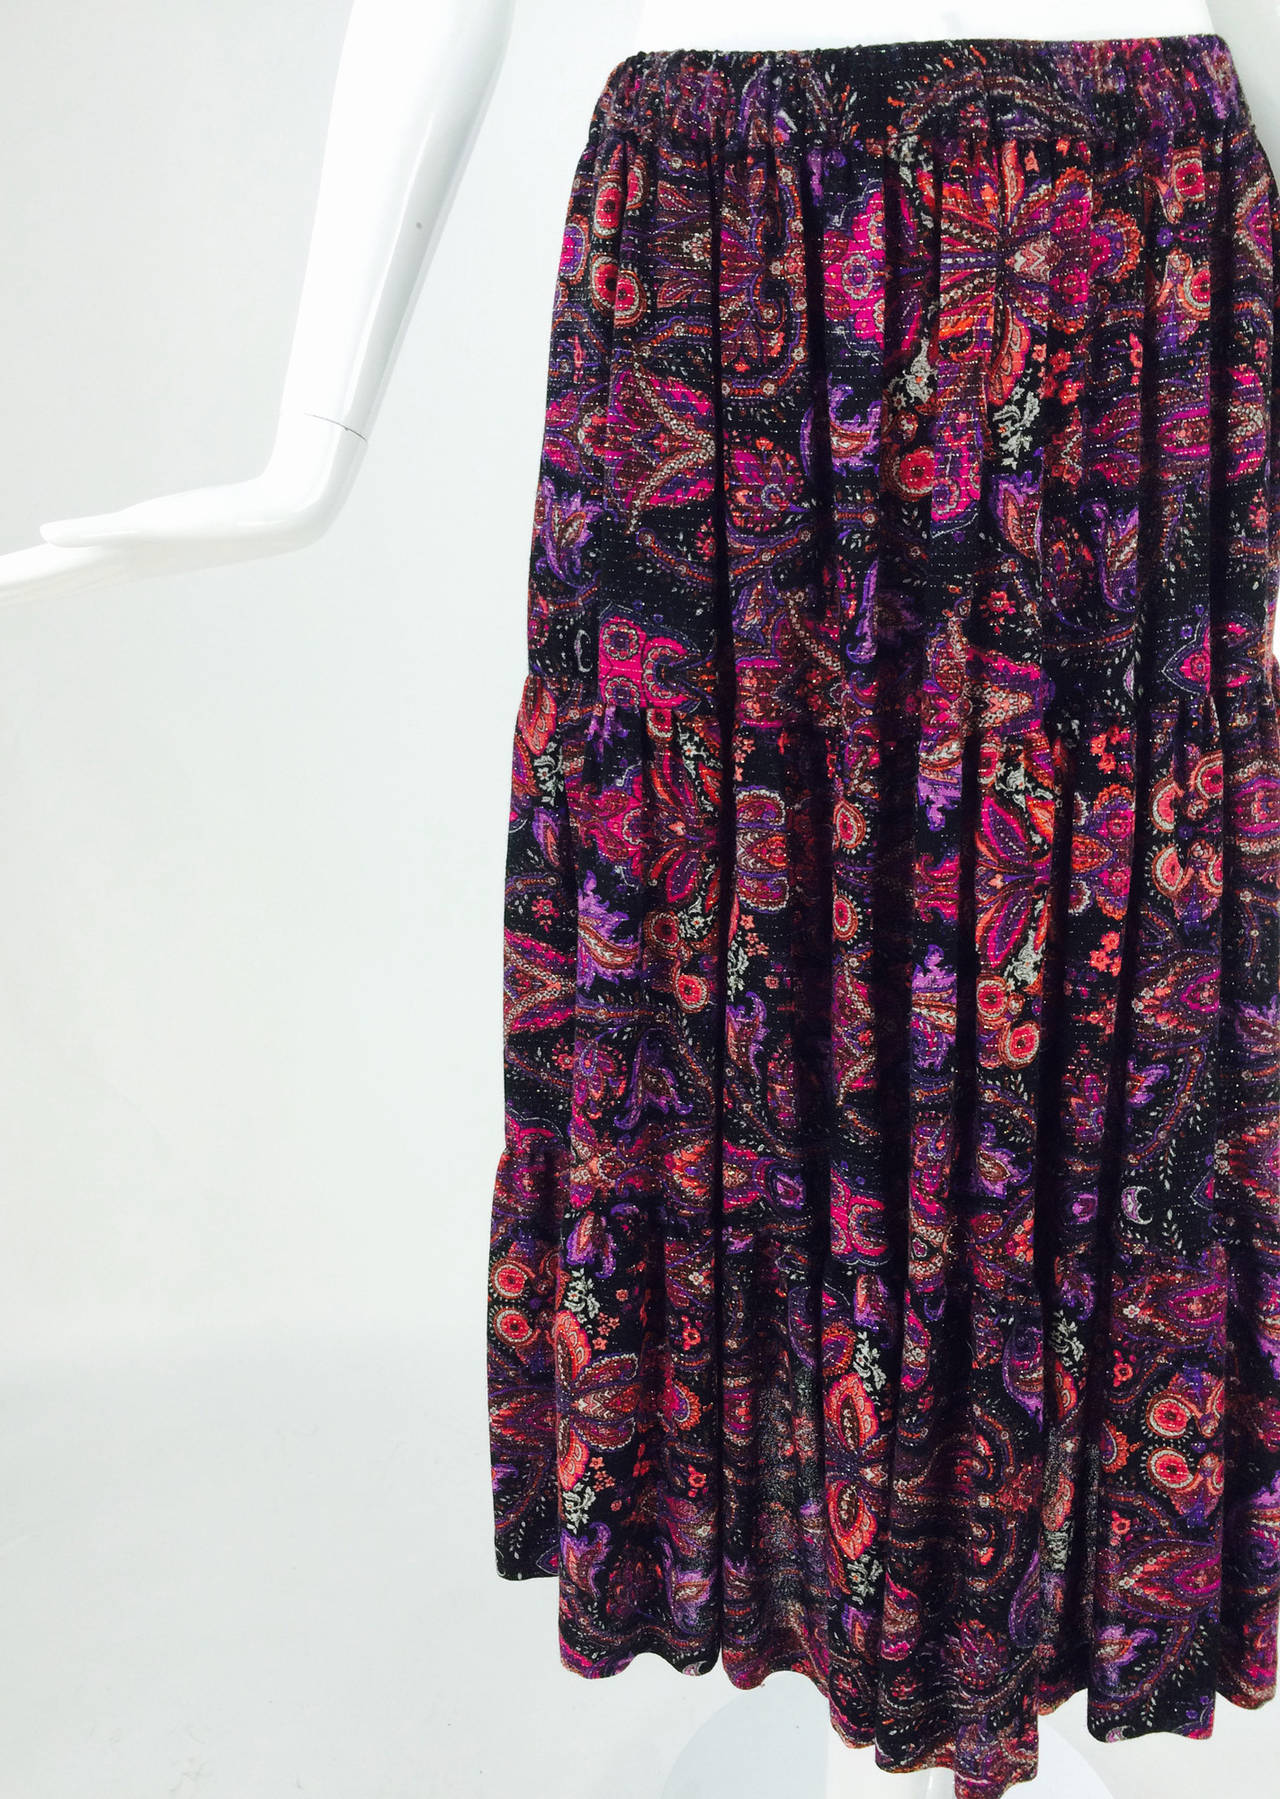 Yves St Laurent YSL Rive Gauche metallic paisley tiered gypsy skirt 1970s In Excellent Condition For Sale In West Palm Beach, FL